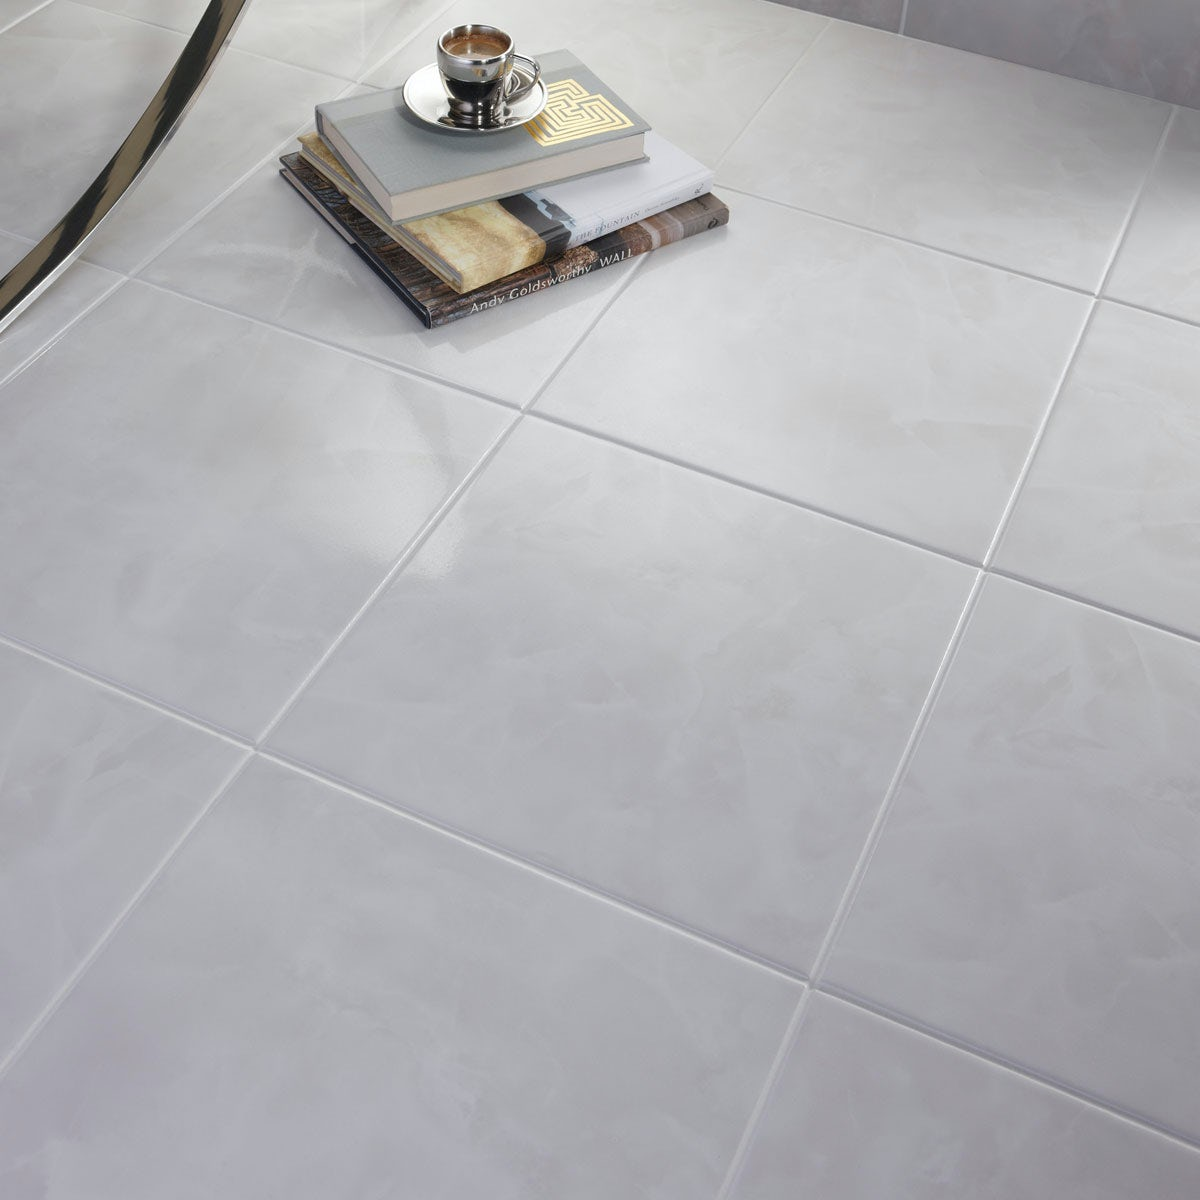 British Ceramic Tile Polar White Gloss Tile 331mm X 331mm